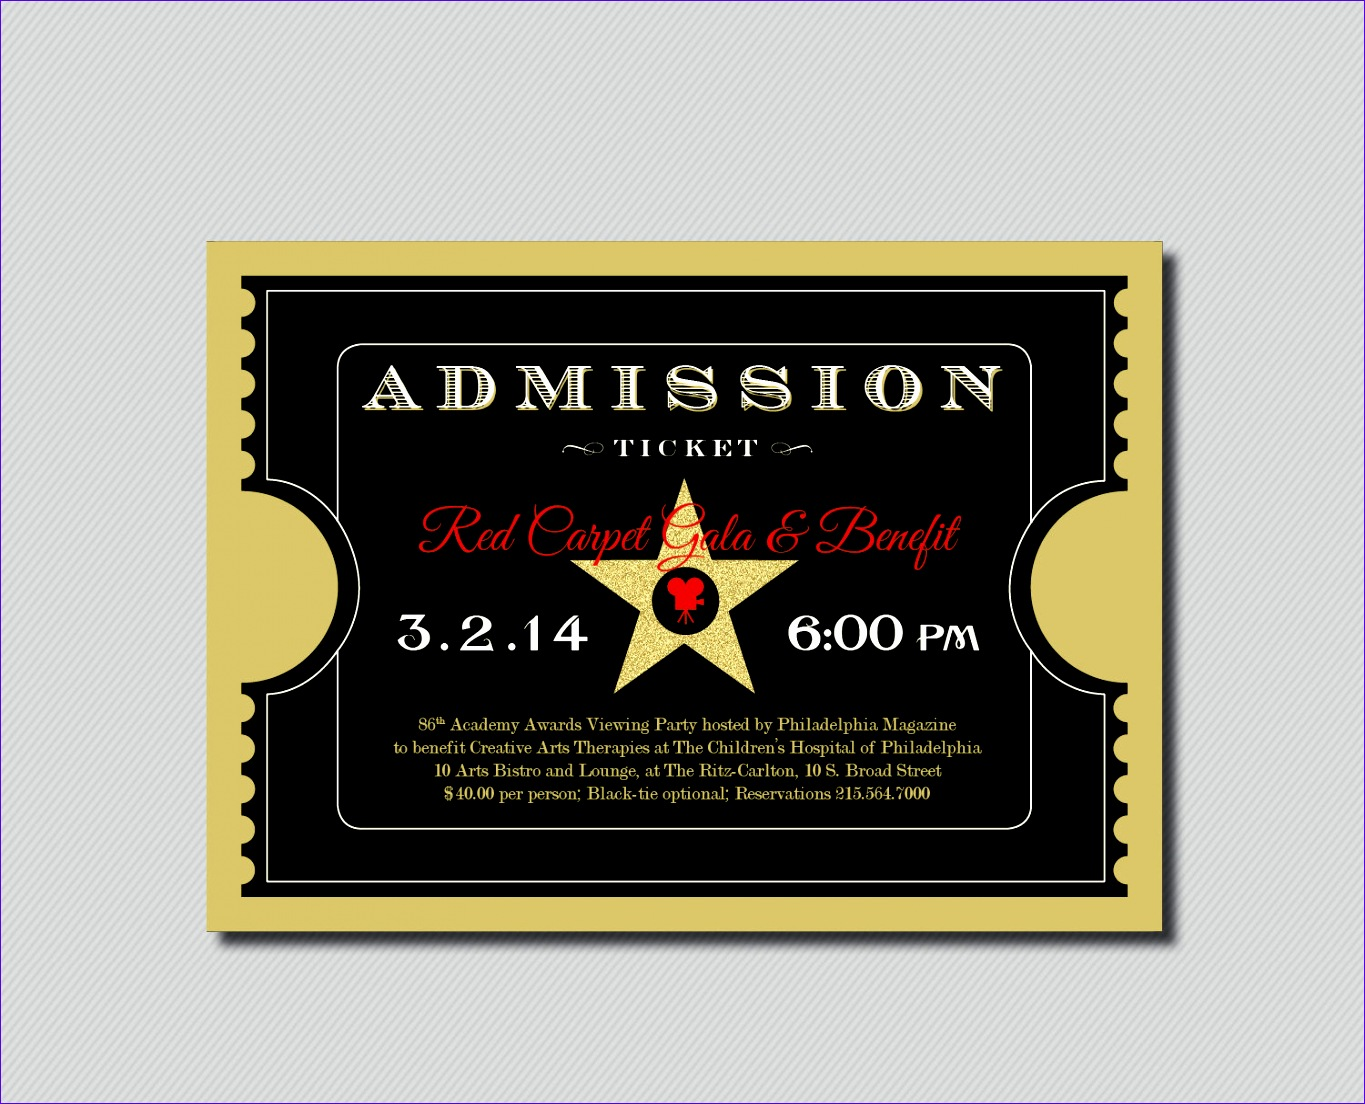 41 inspiring templates of admission ticket 13651104